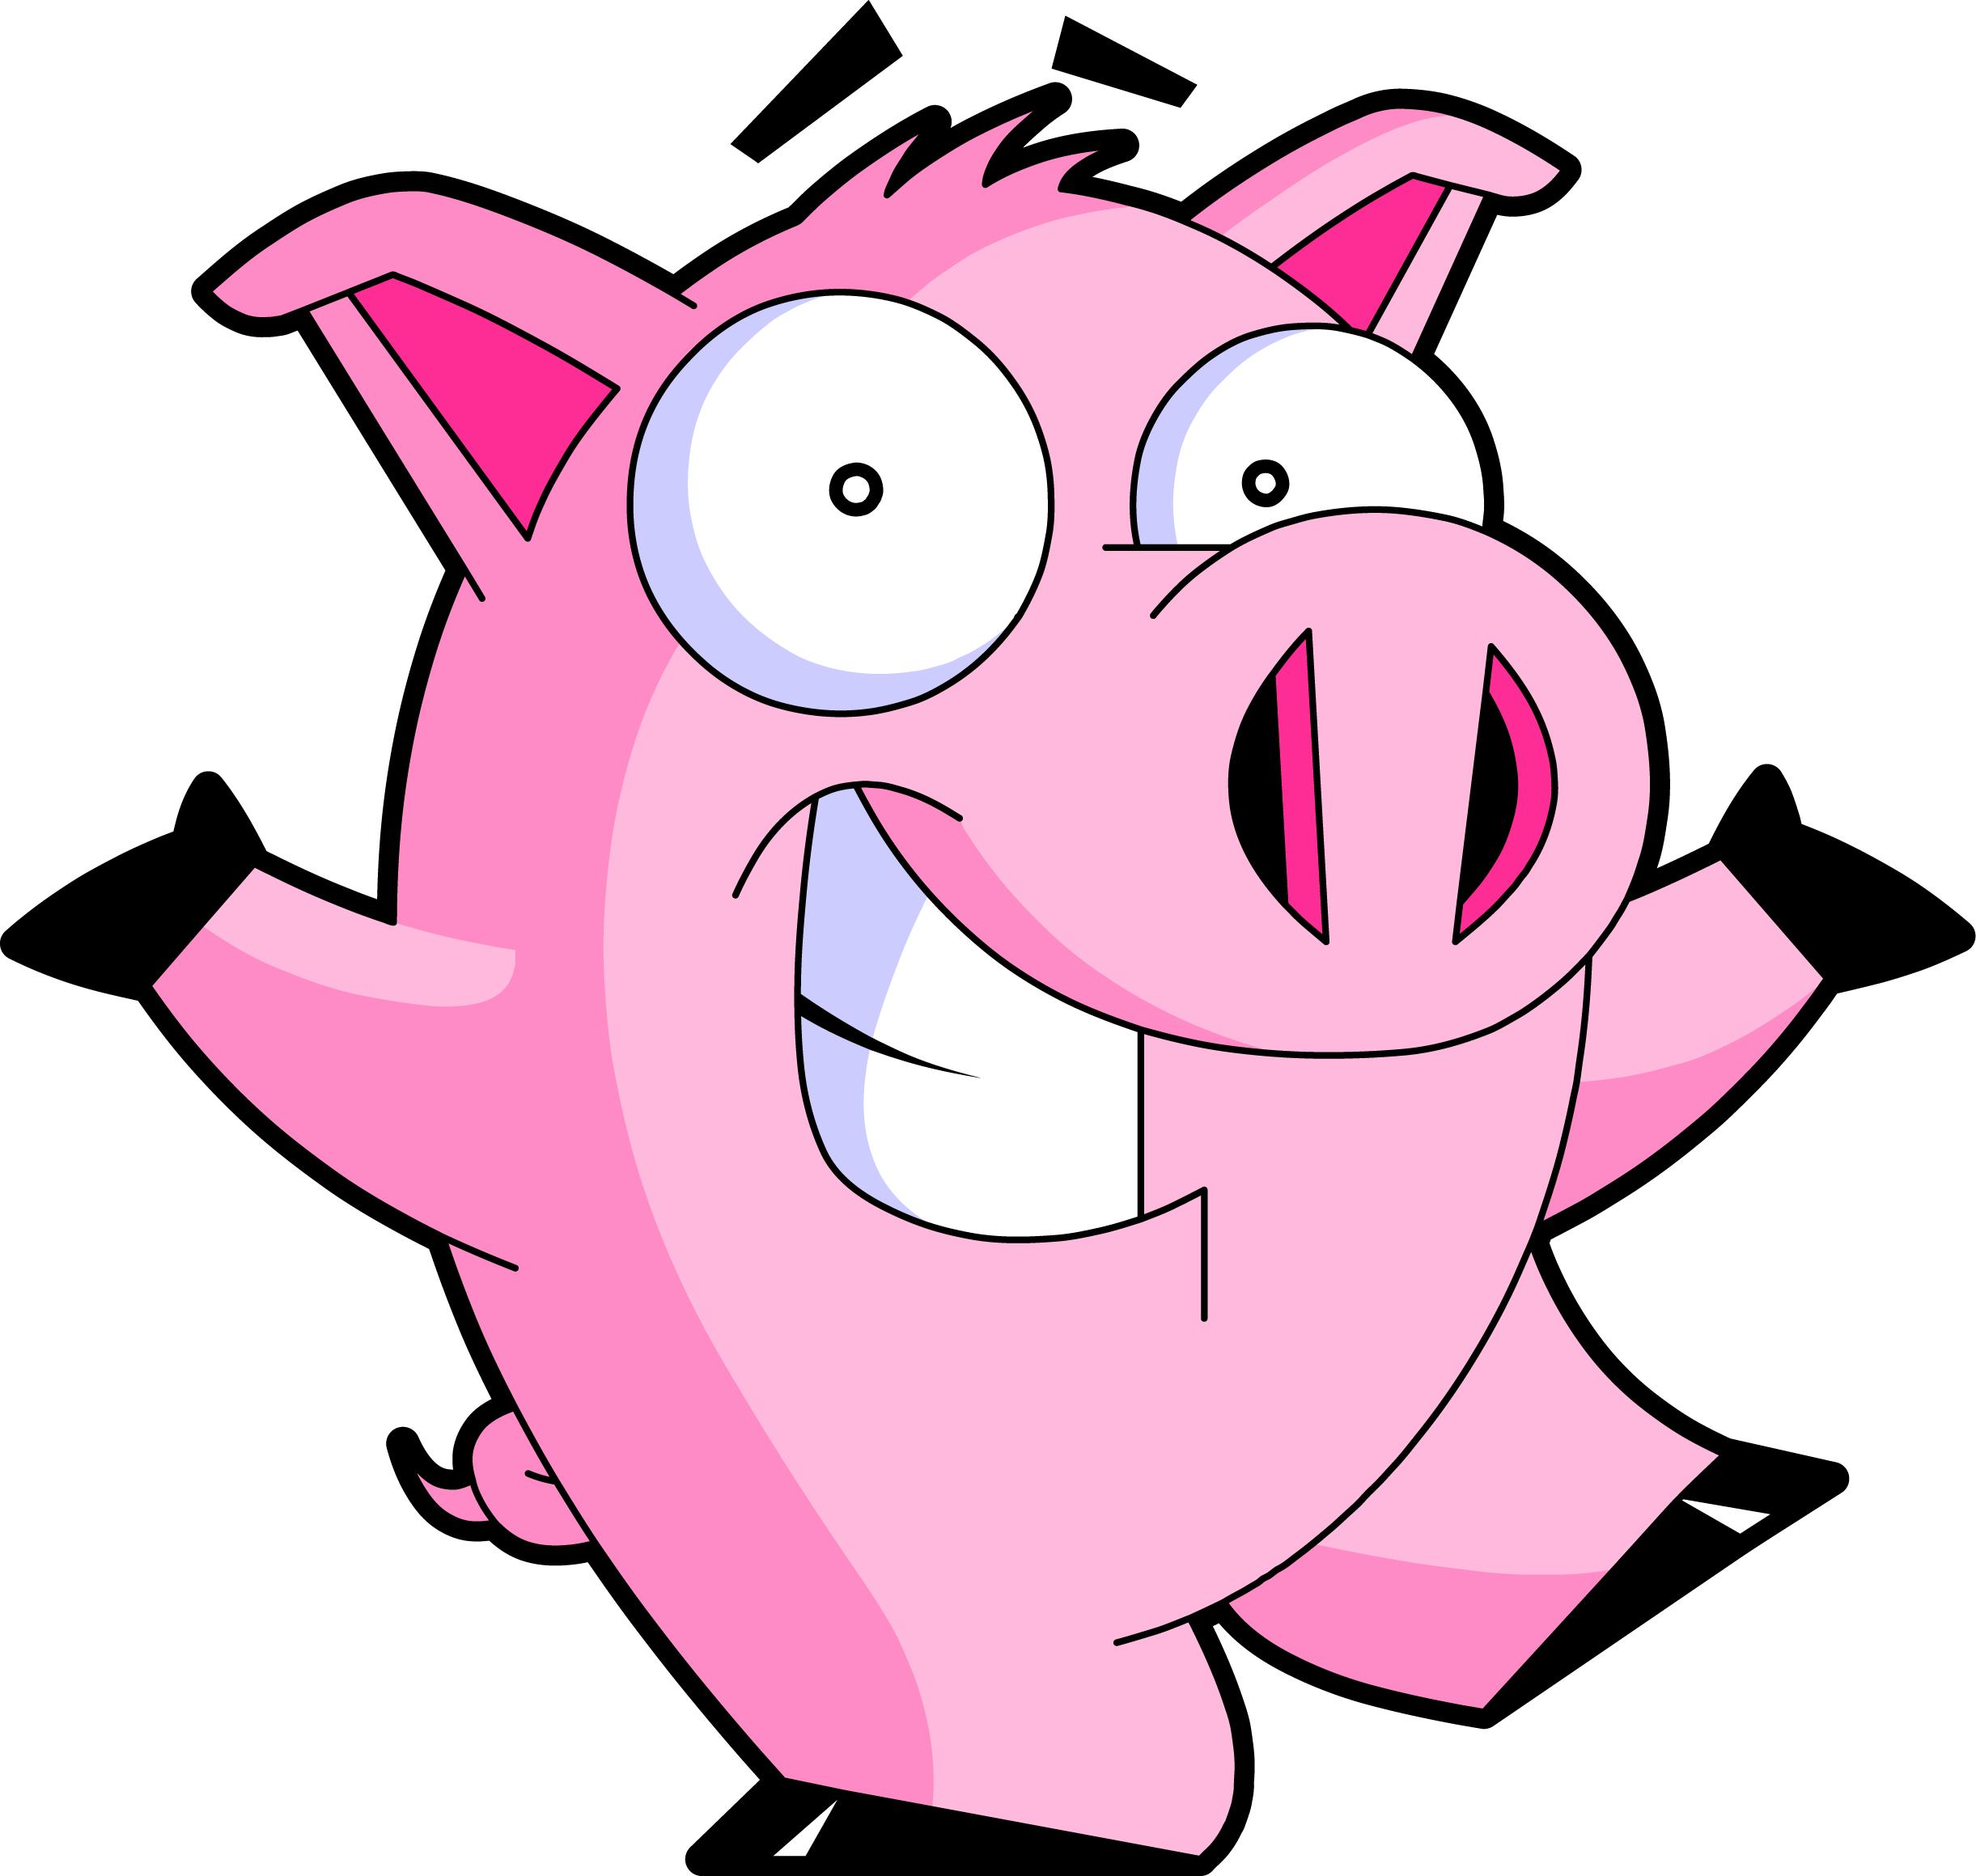 Pig clipart animated. Free pigs pictures download